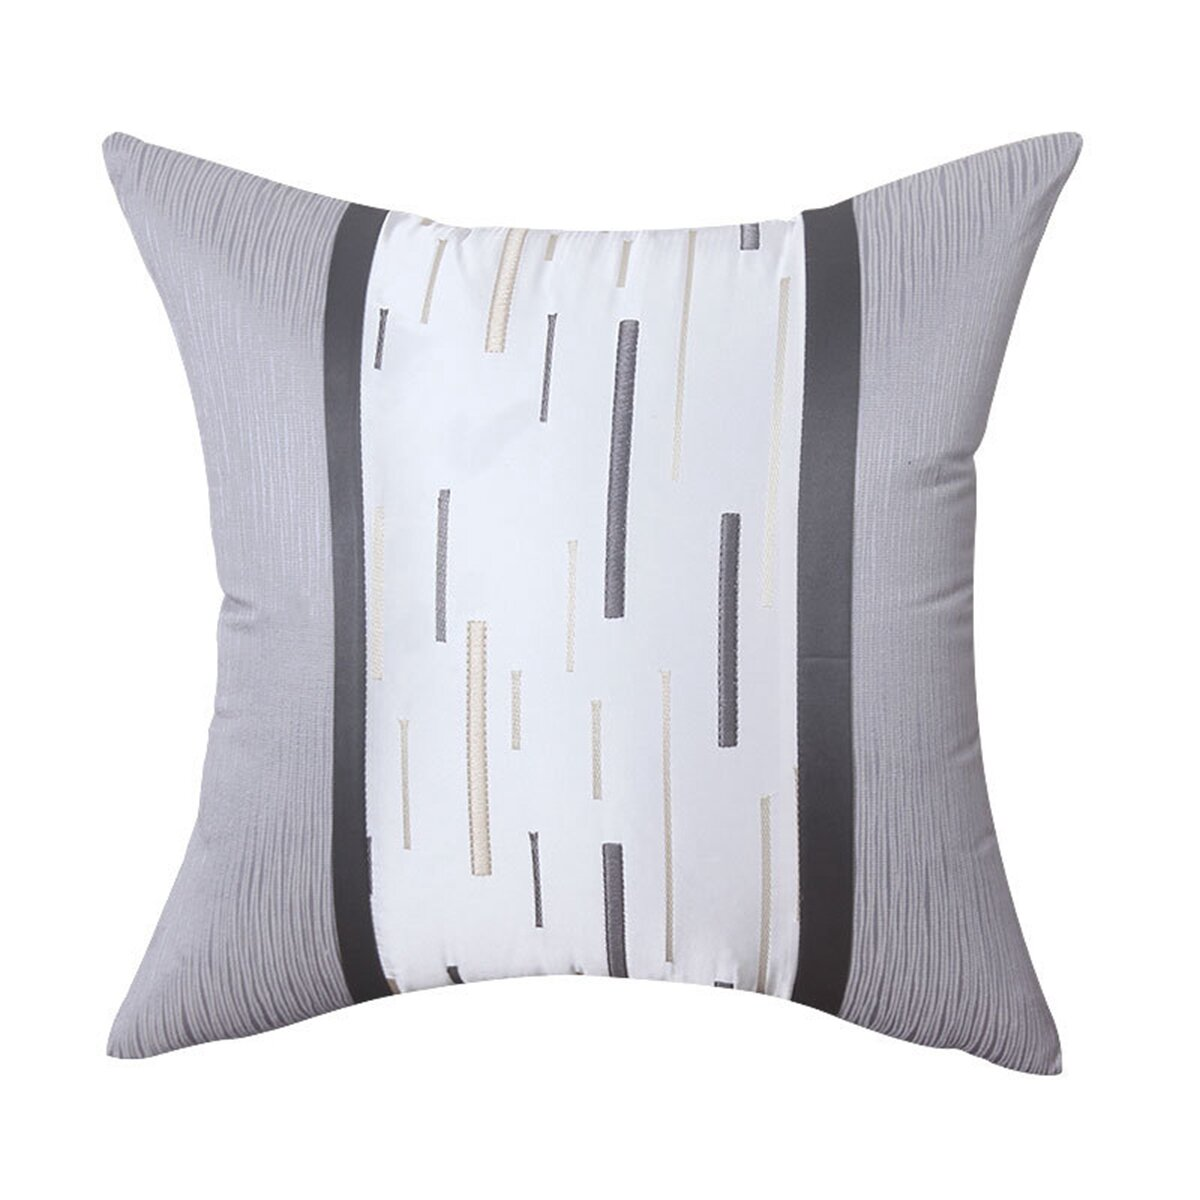 """Luxury Embroidered Cotton & Silk Cushion Pillow, Home Decorative Pillow  Covers Classic Pillows Throw Pillows Covers Grey and White 10"""" x 10"""""""